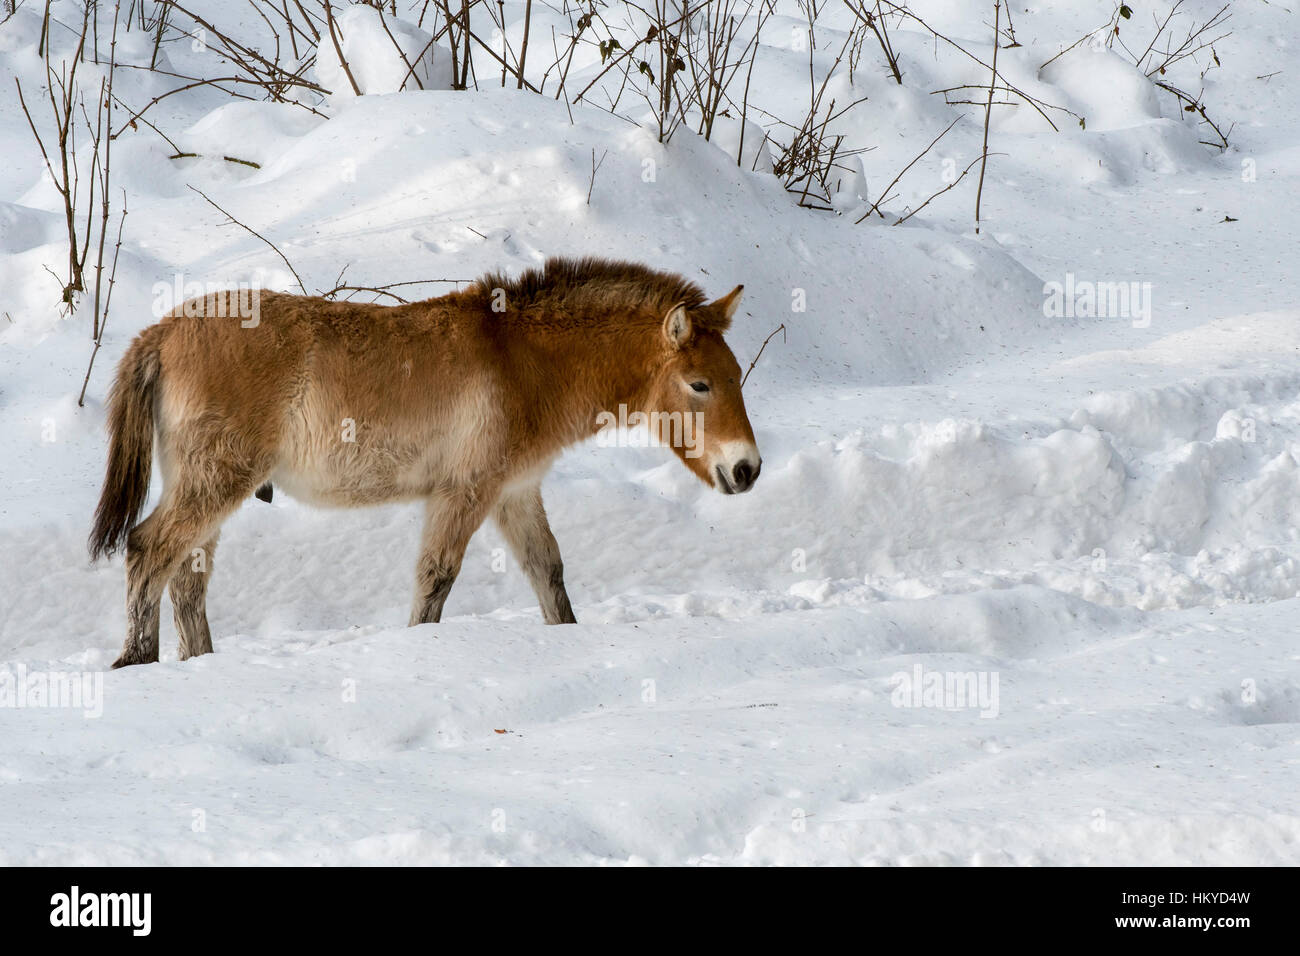 Przewalski horse (Equus ferus przewalskii) native to the steppes of Mongolia, central Asia in the snow in winter - Stock Image